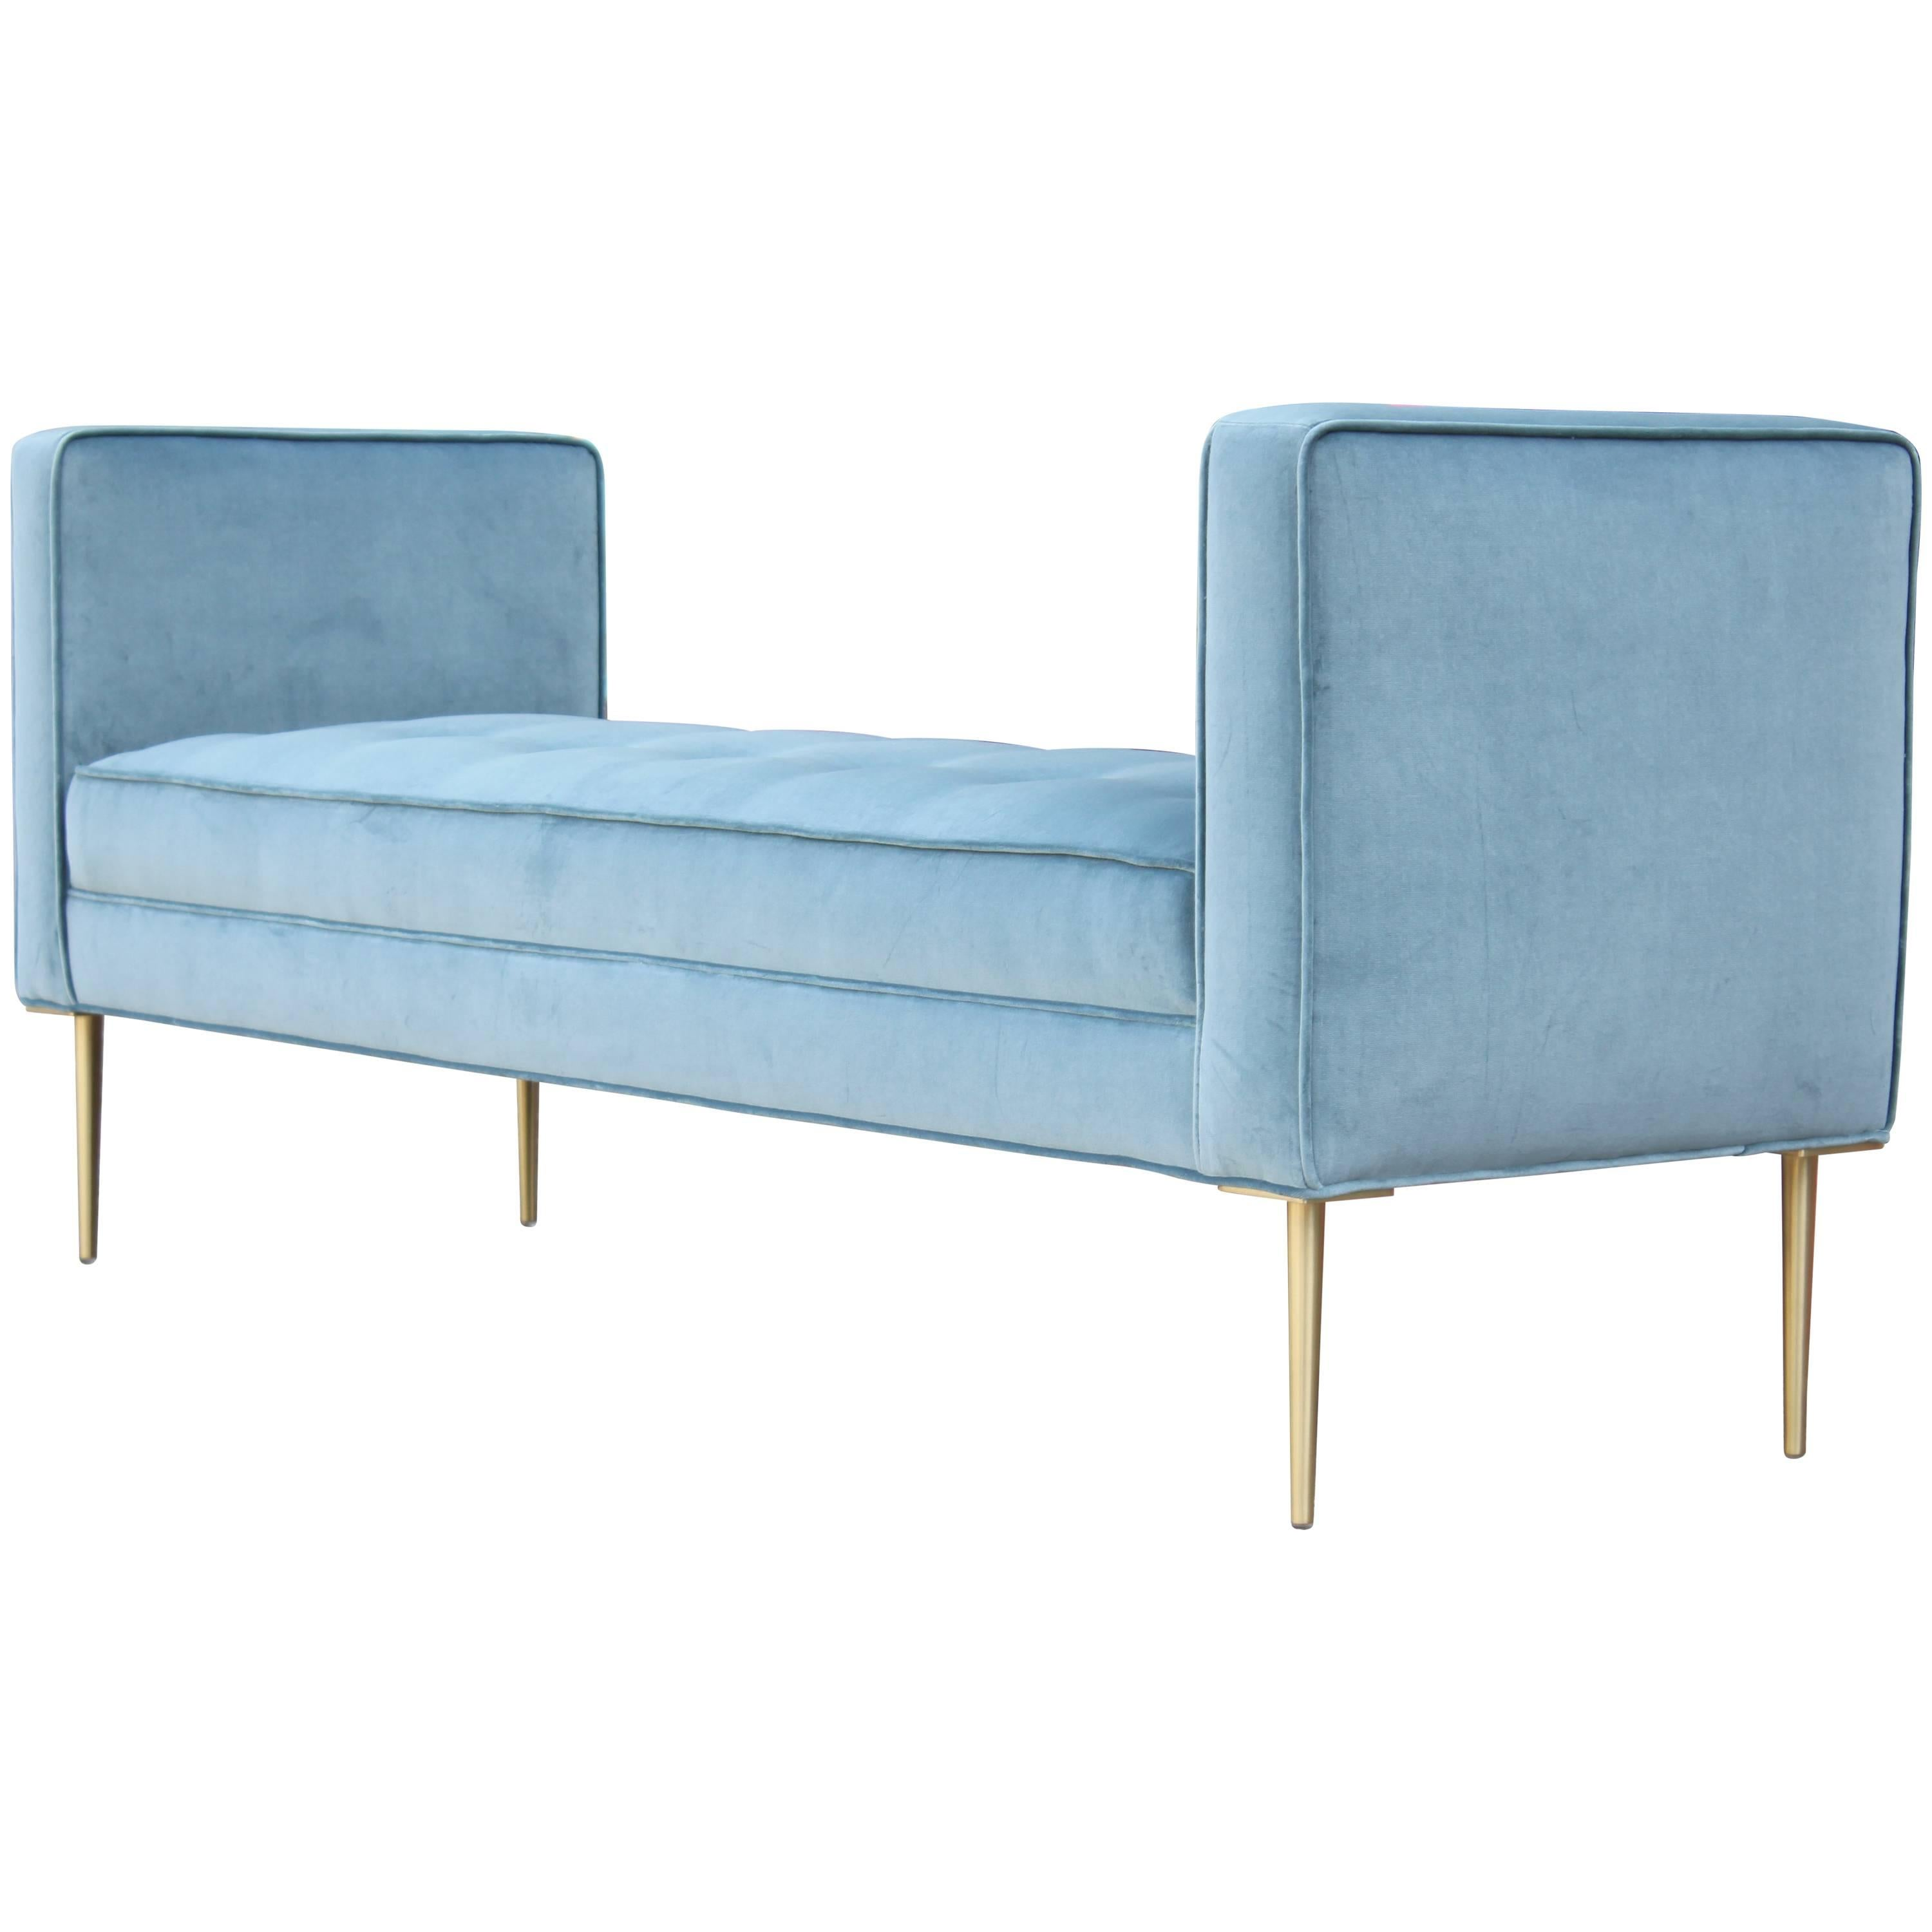 Modern Tufted Armed Bench In Light Blue Velvet With Brass Legs For Sale